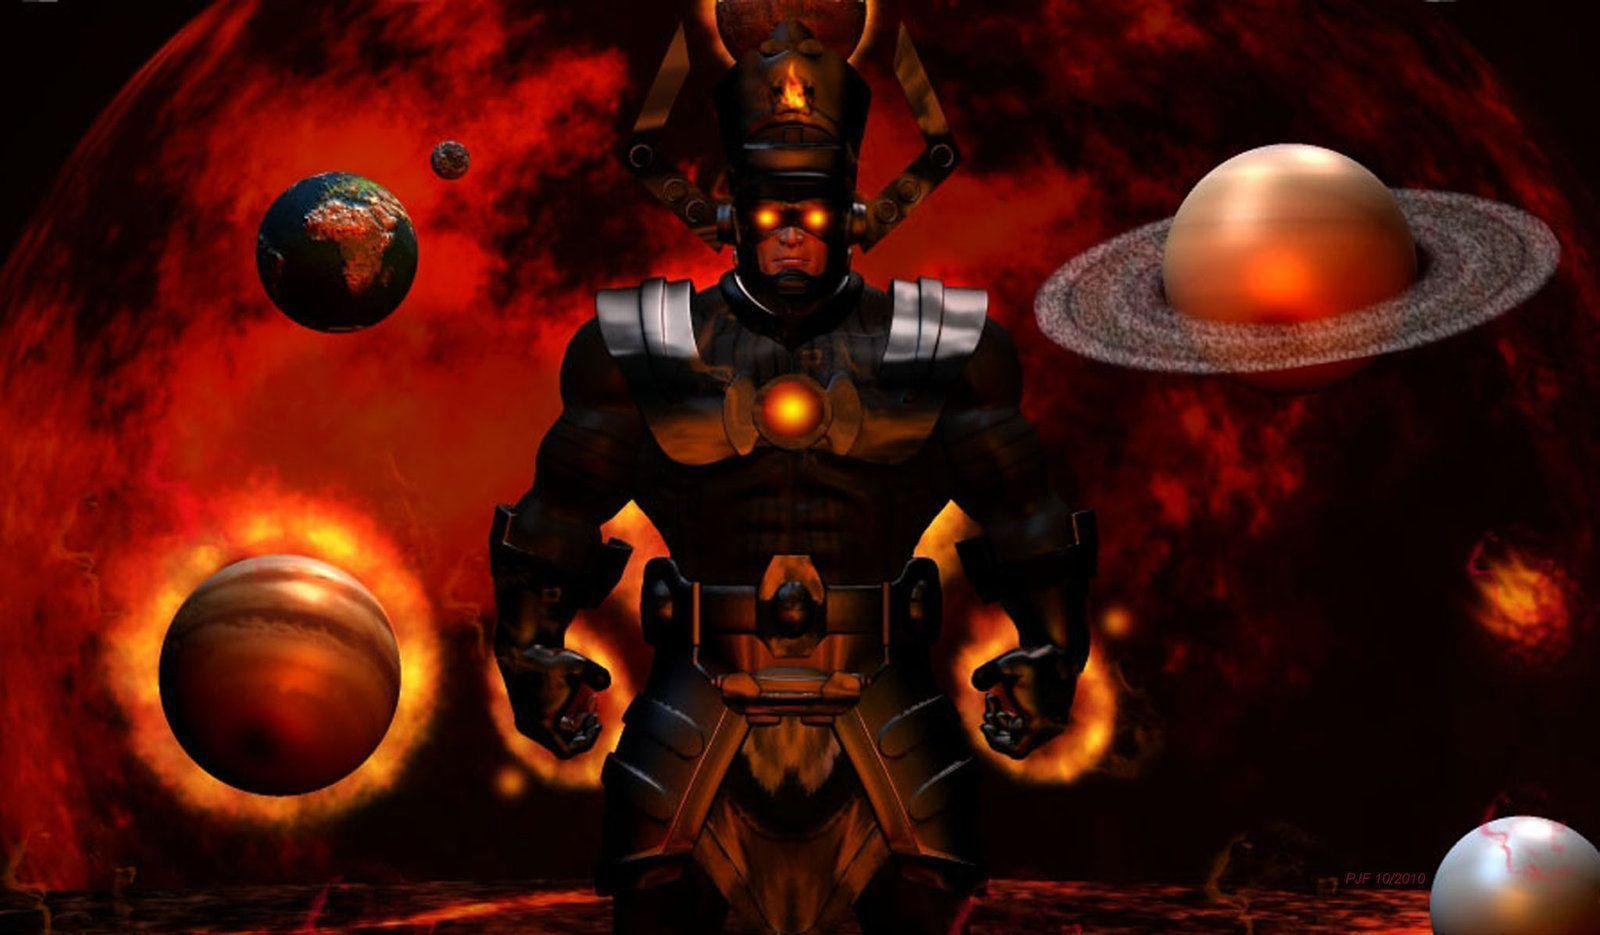 Black Hole Wallpaper Android Galactus Wallpapers Wallpaper Cave